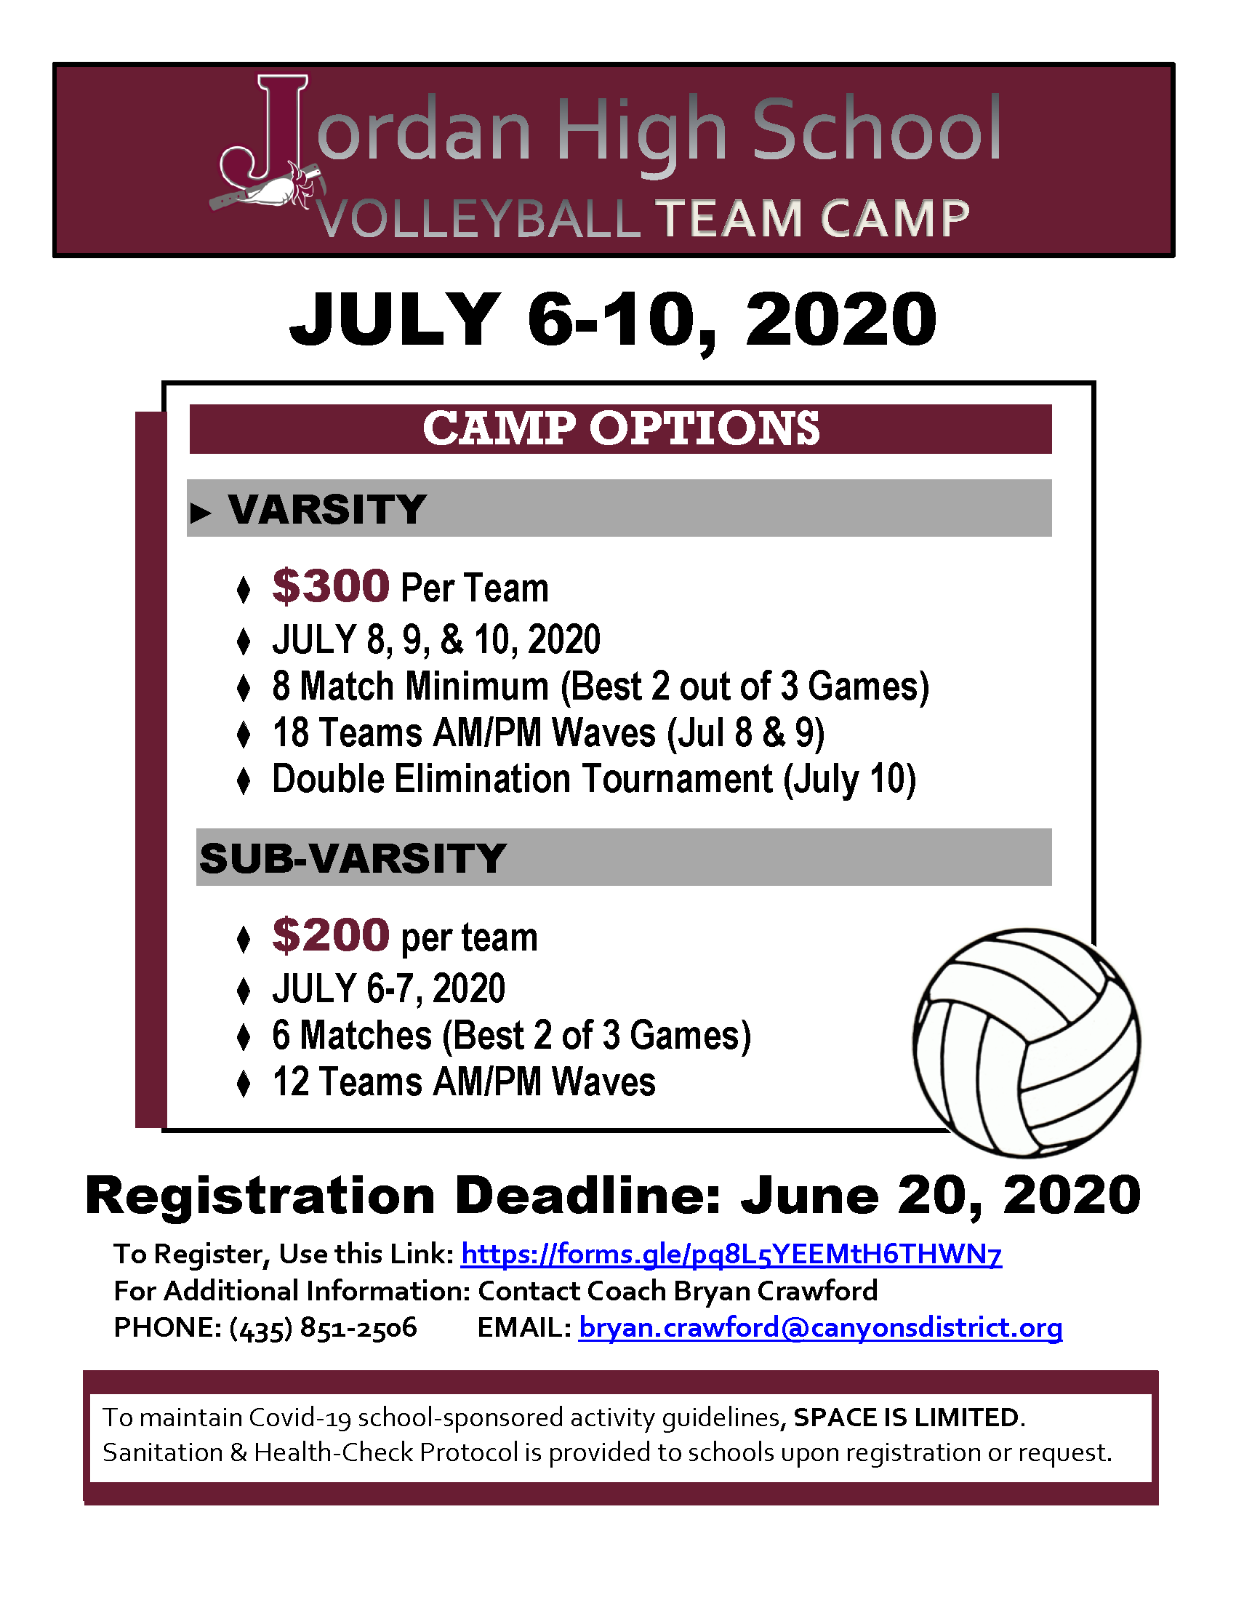 JHS Volleyball to Host Volleyball Team Camp & Tournament